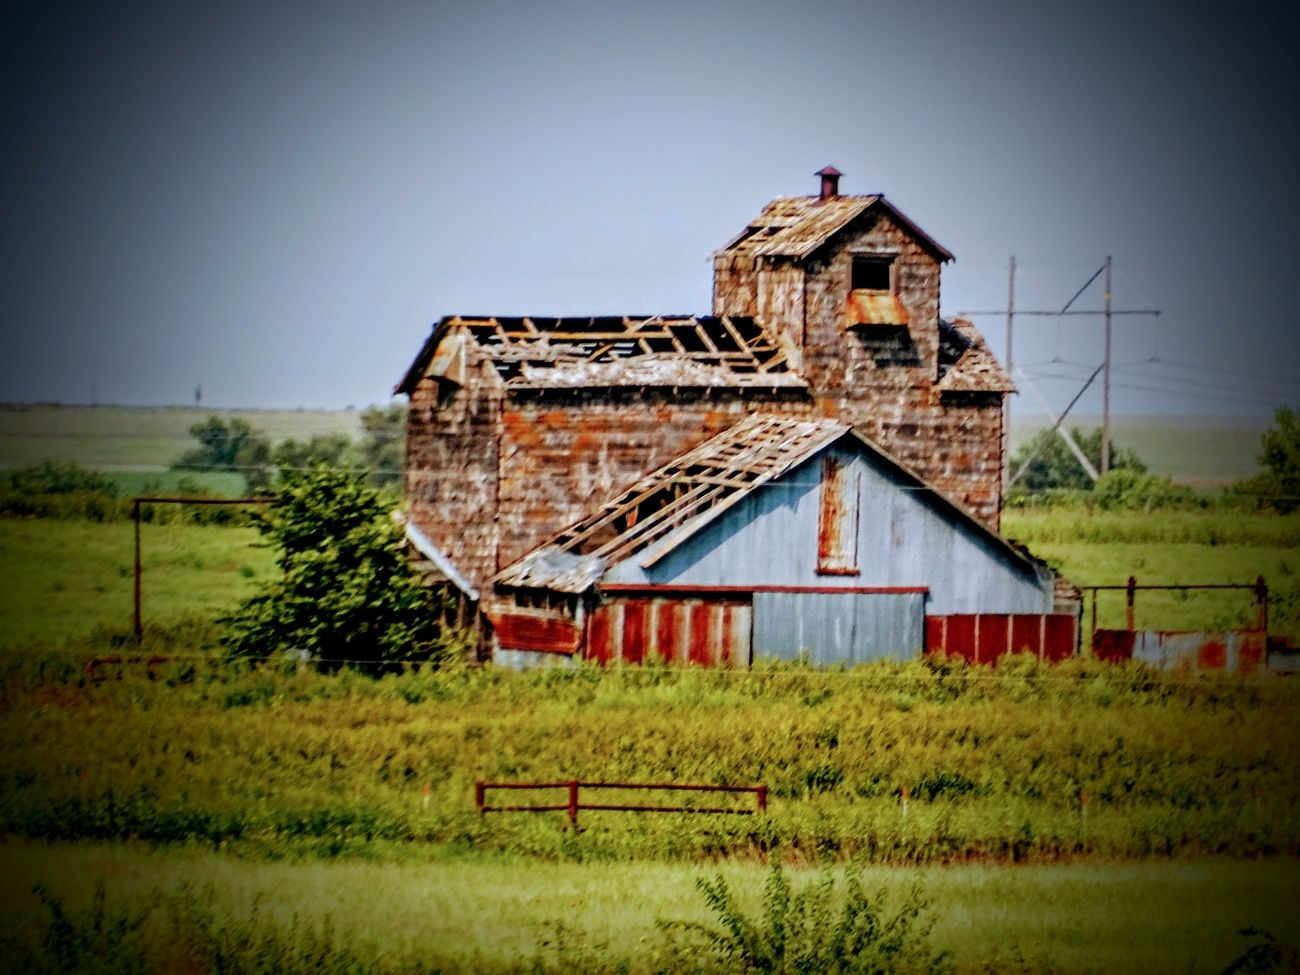 On my way home last week from the Flint Hills. I tend to wander my way on backroads. This was the most AMAZING turn I had ever taken! I could not believe my eyes when I saw this barn across a field and down a road closed off. I have more, but they are in my secret vault of favorites ever to be revealed. This barn was BEAUTIFULLY PERFECT! Eclectic Eye Photography